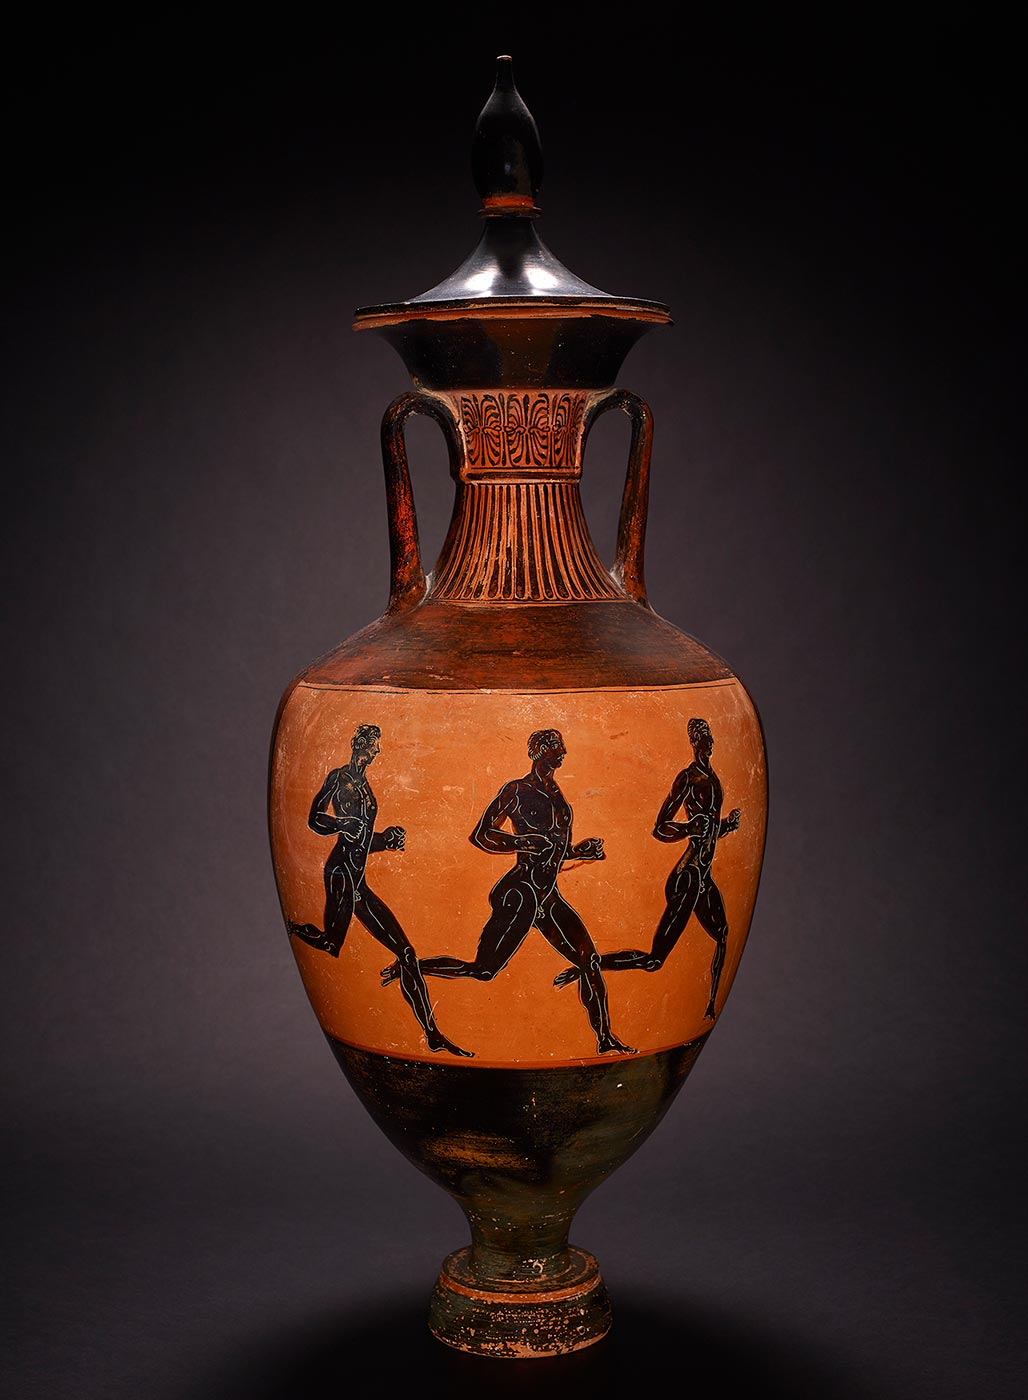 A two-handled narrow necked vessel with representations of running figures painted around its side. - click to view larger image